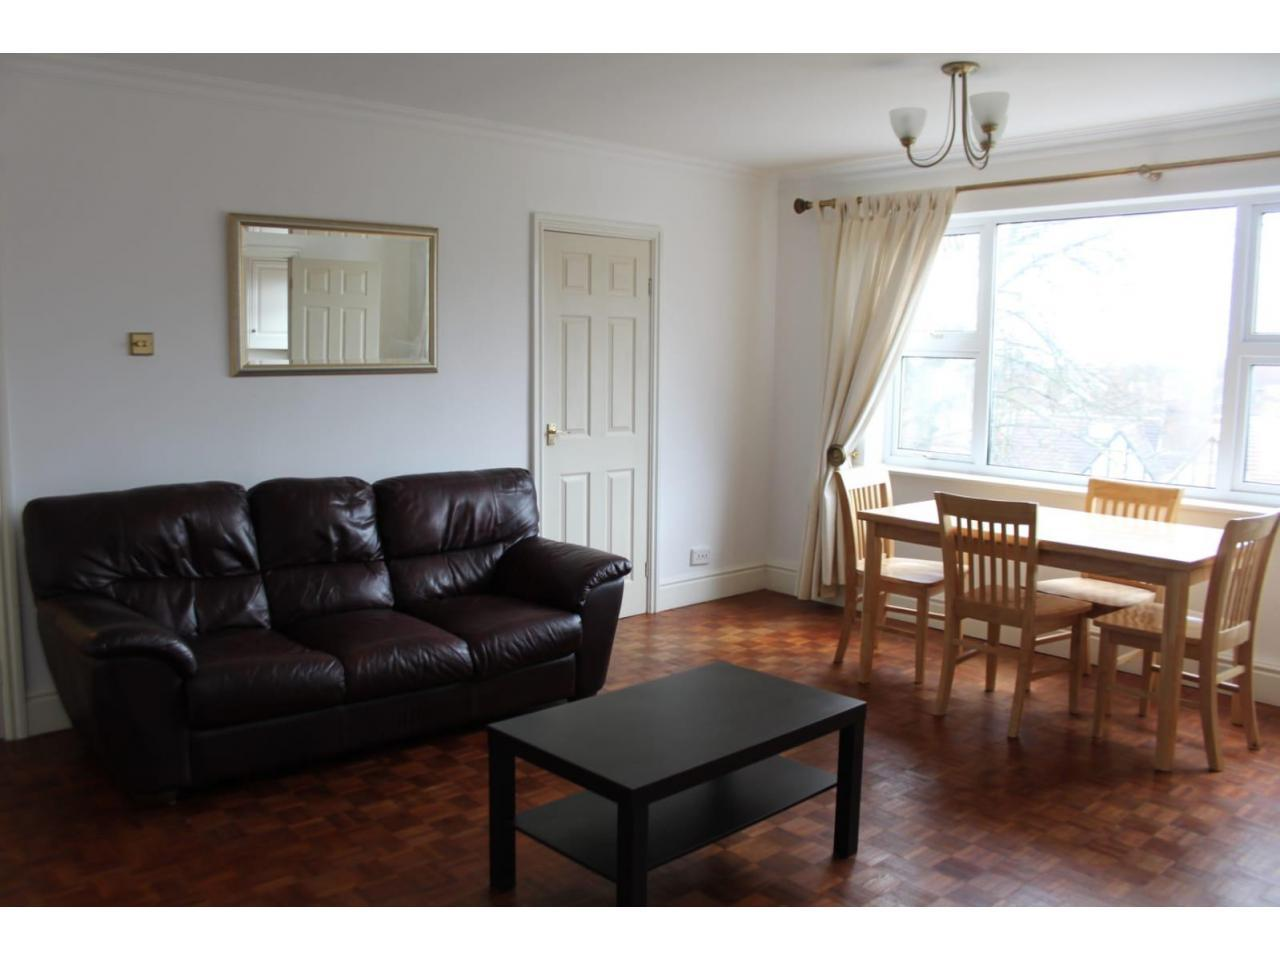 1 Bedroom Ealing W13 - 3